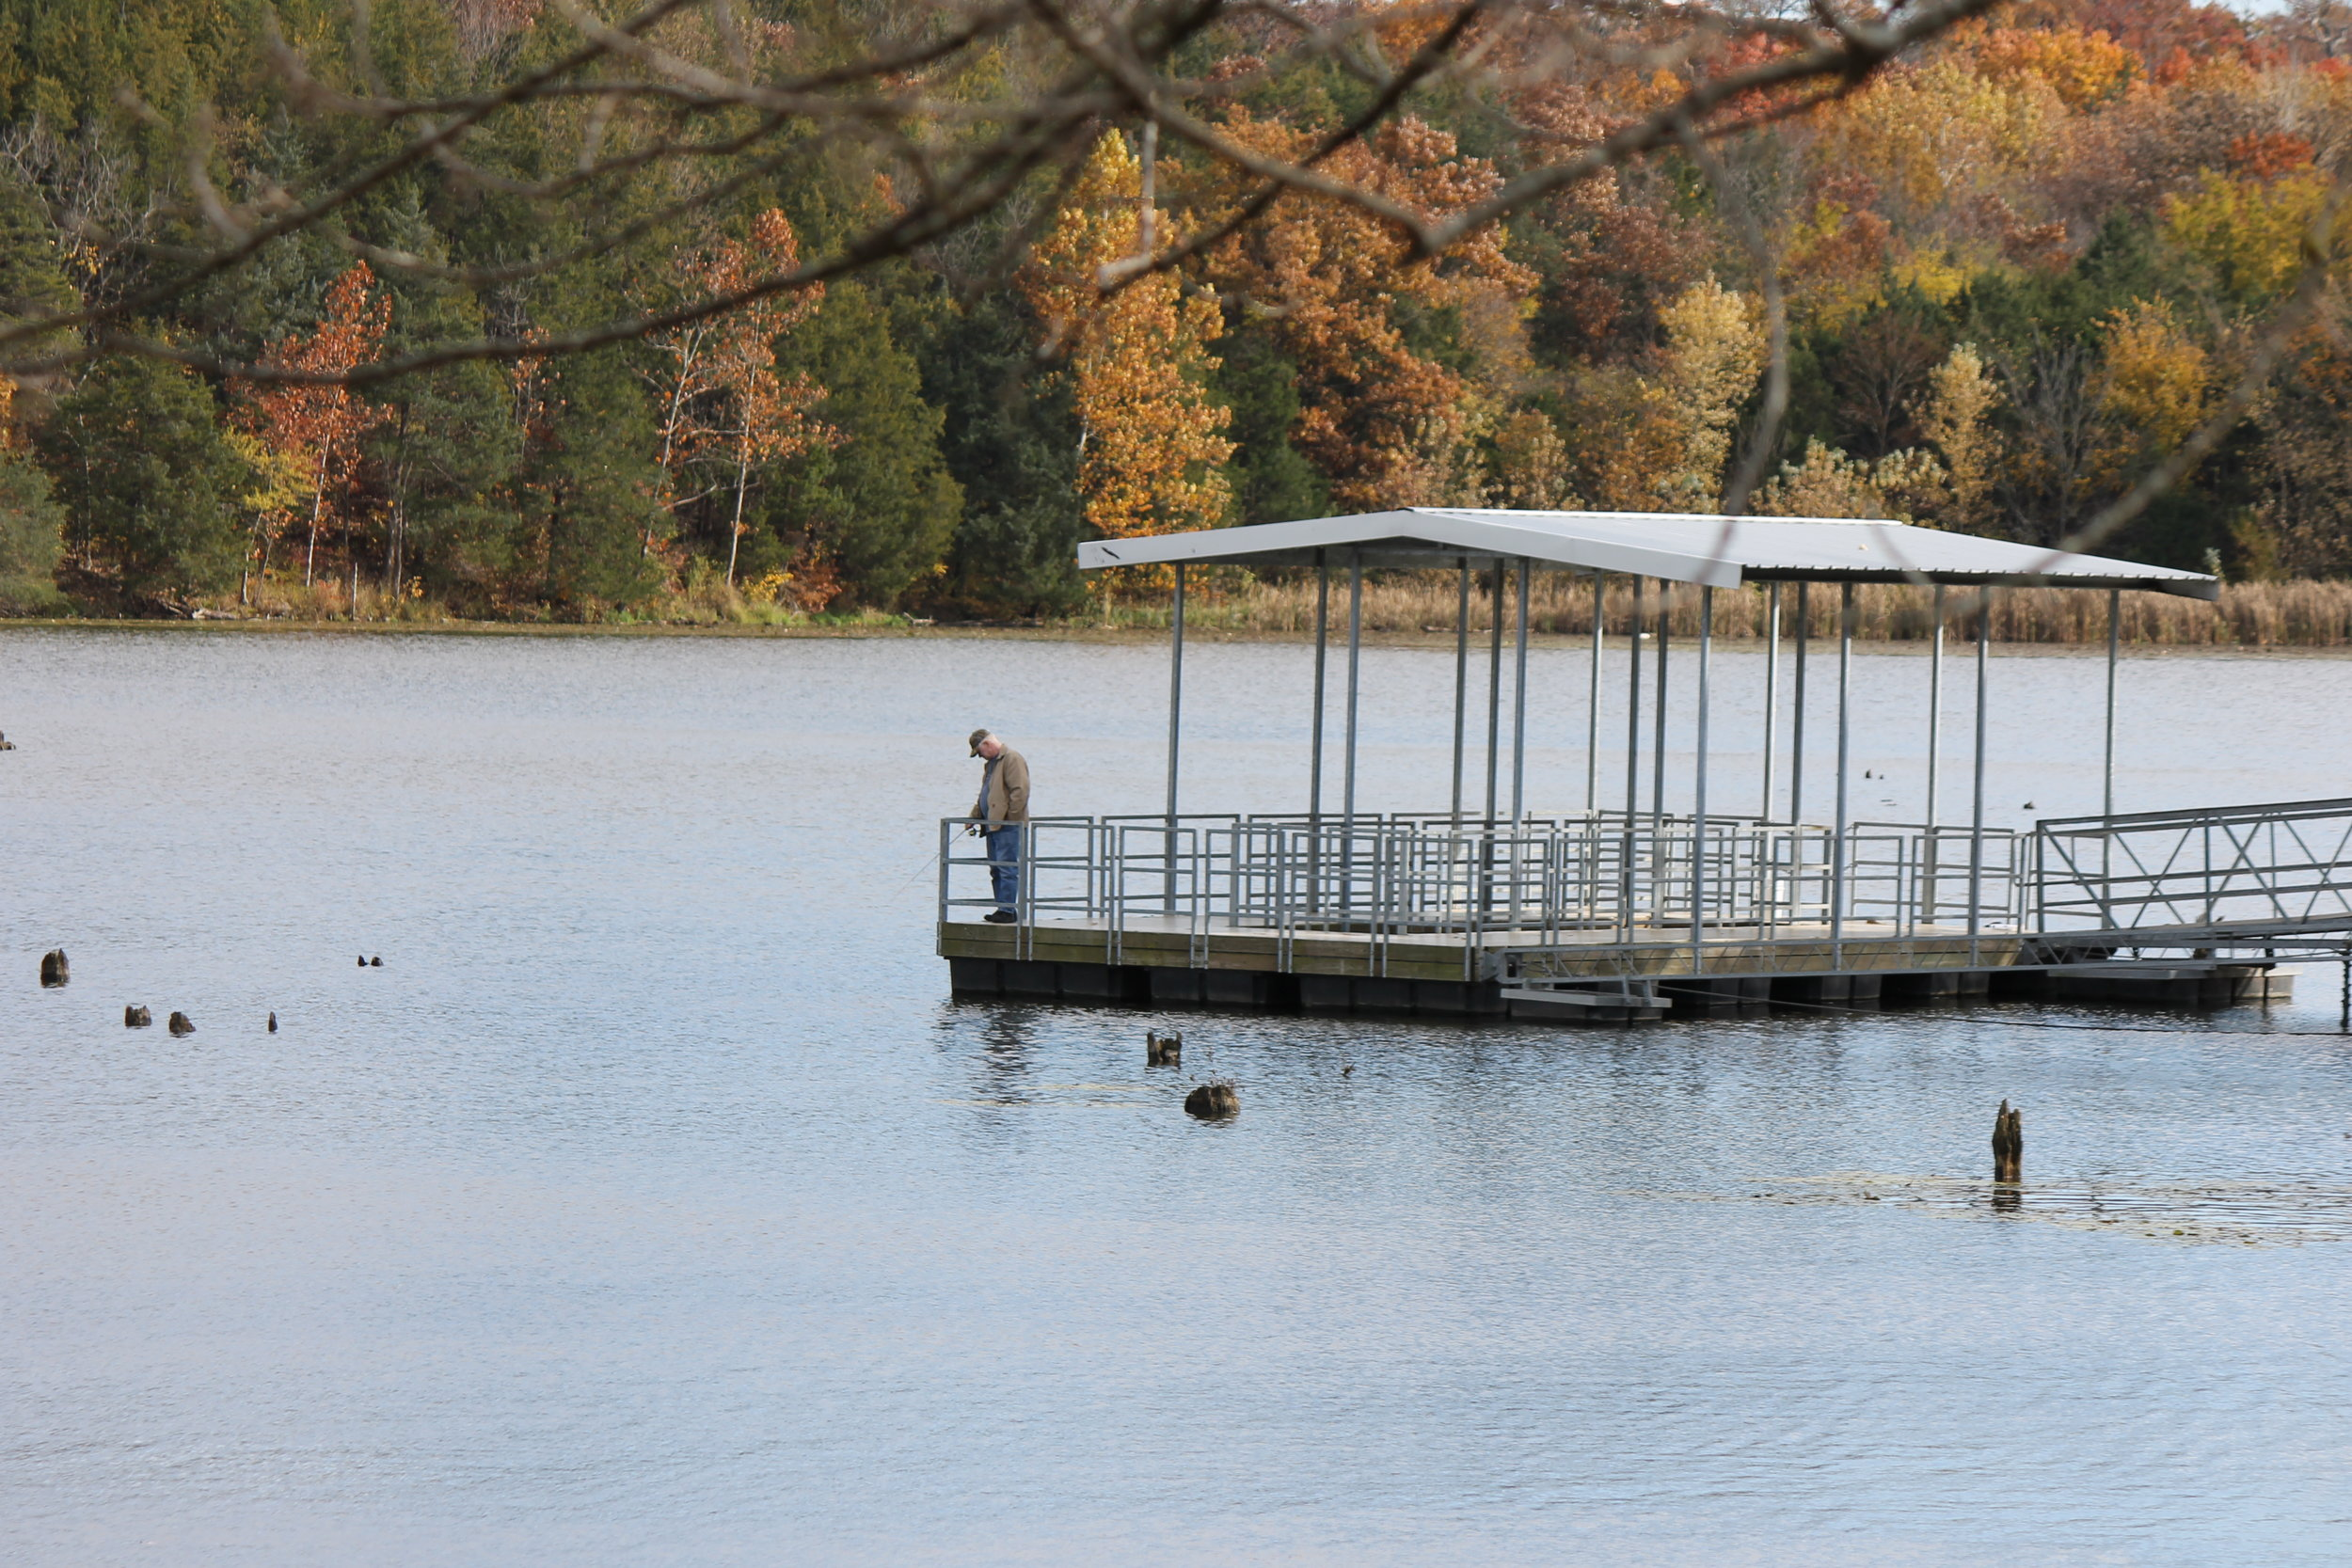 binder-lake-place-to-go-fishing-jefferson-city-mo-amy-schroeder-bass-bluegill-catfish-missouri-department-of-conservation